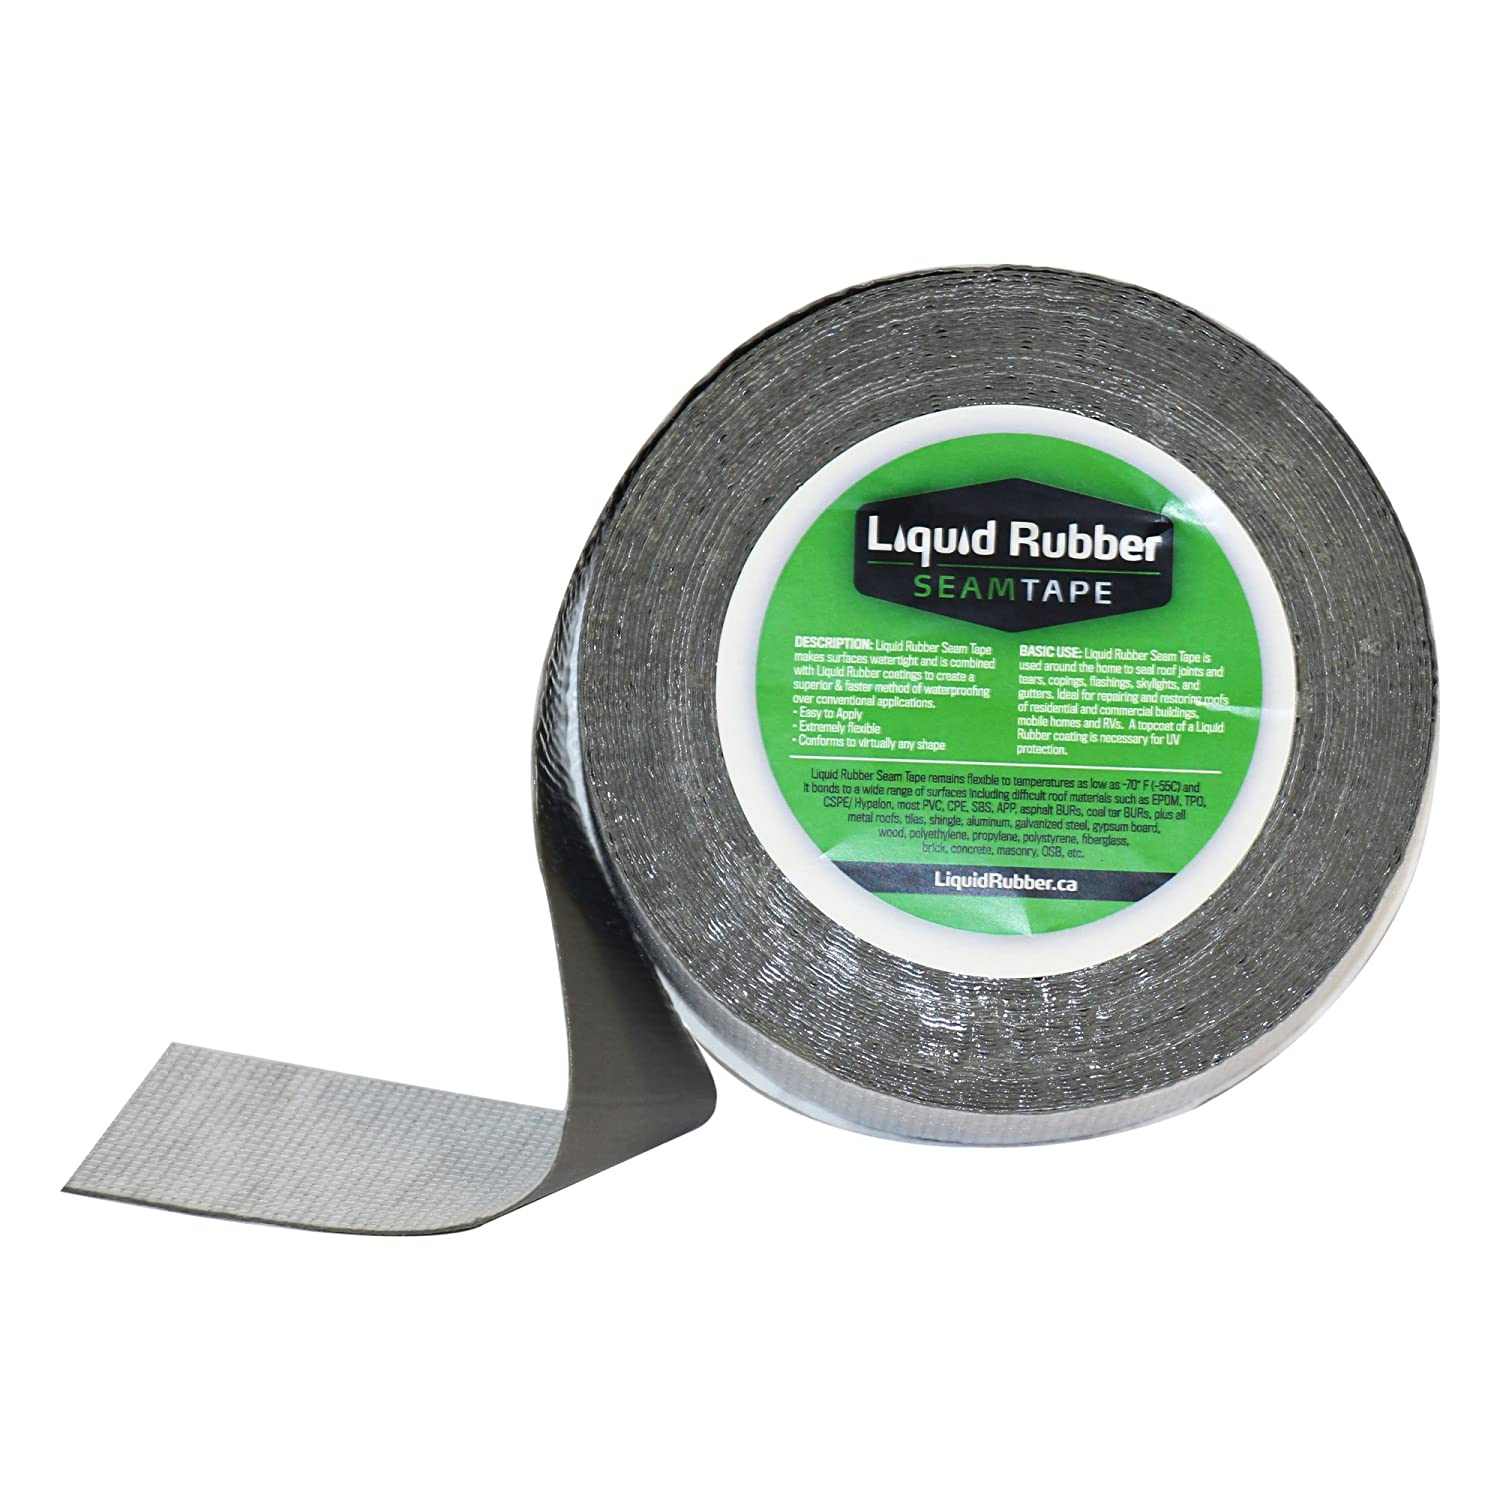 "Liquid Rubber Seam Tape - Peel and Stick | Fix Leaks | Repair and Restore | Easy to Use | 2"" x 50' Roll"